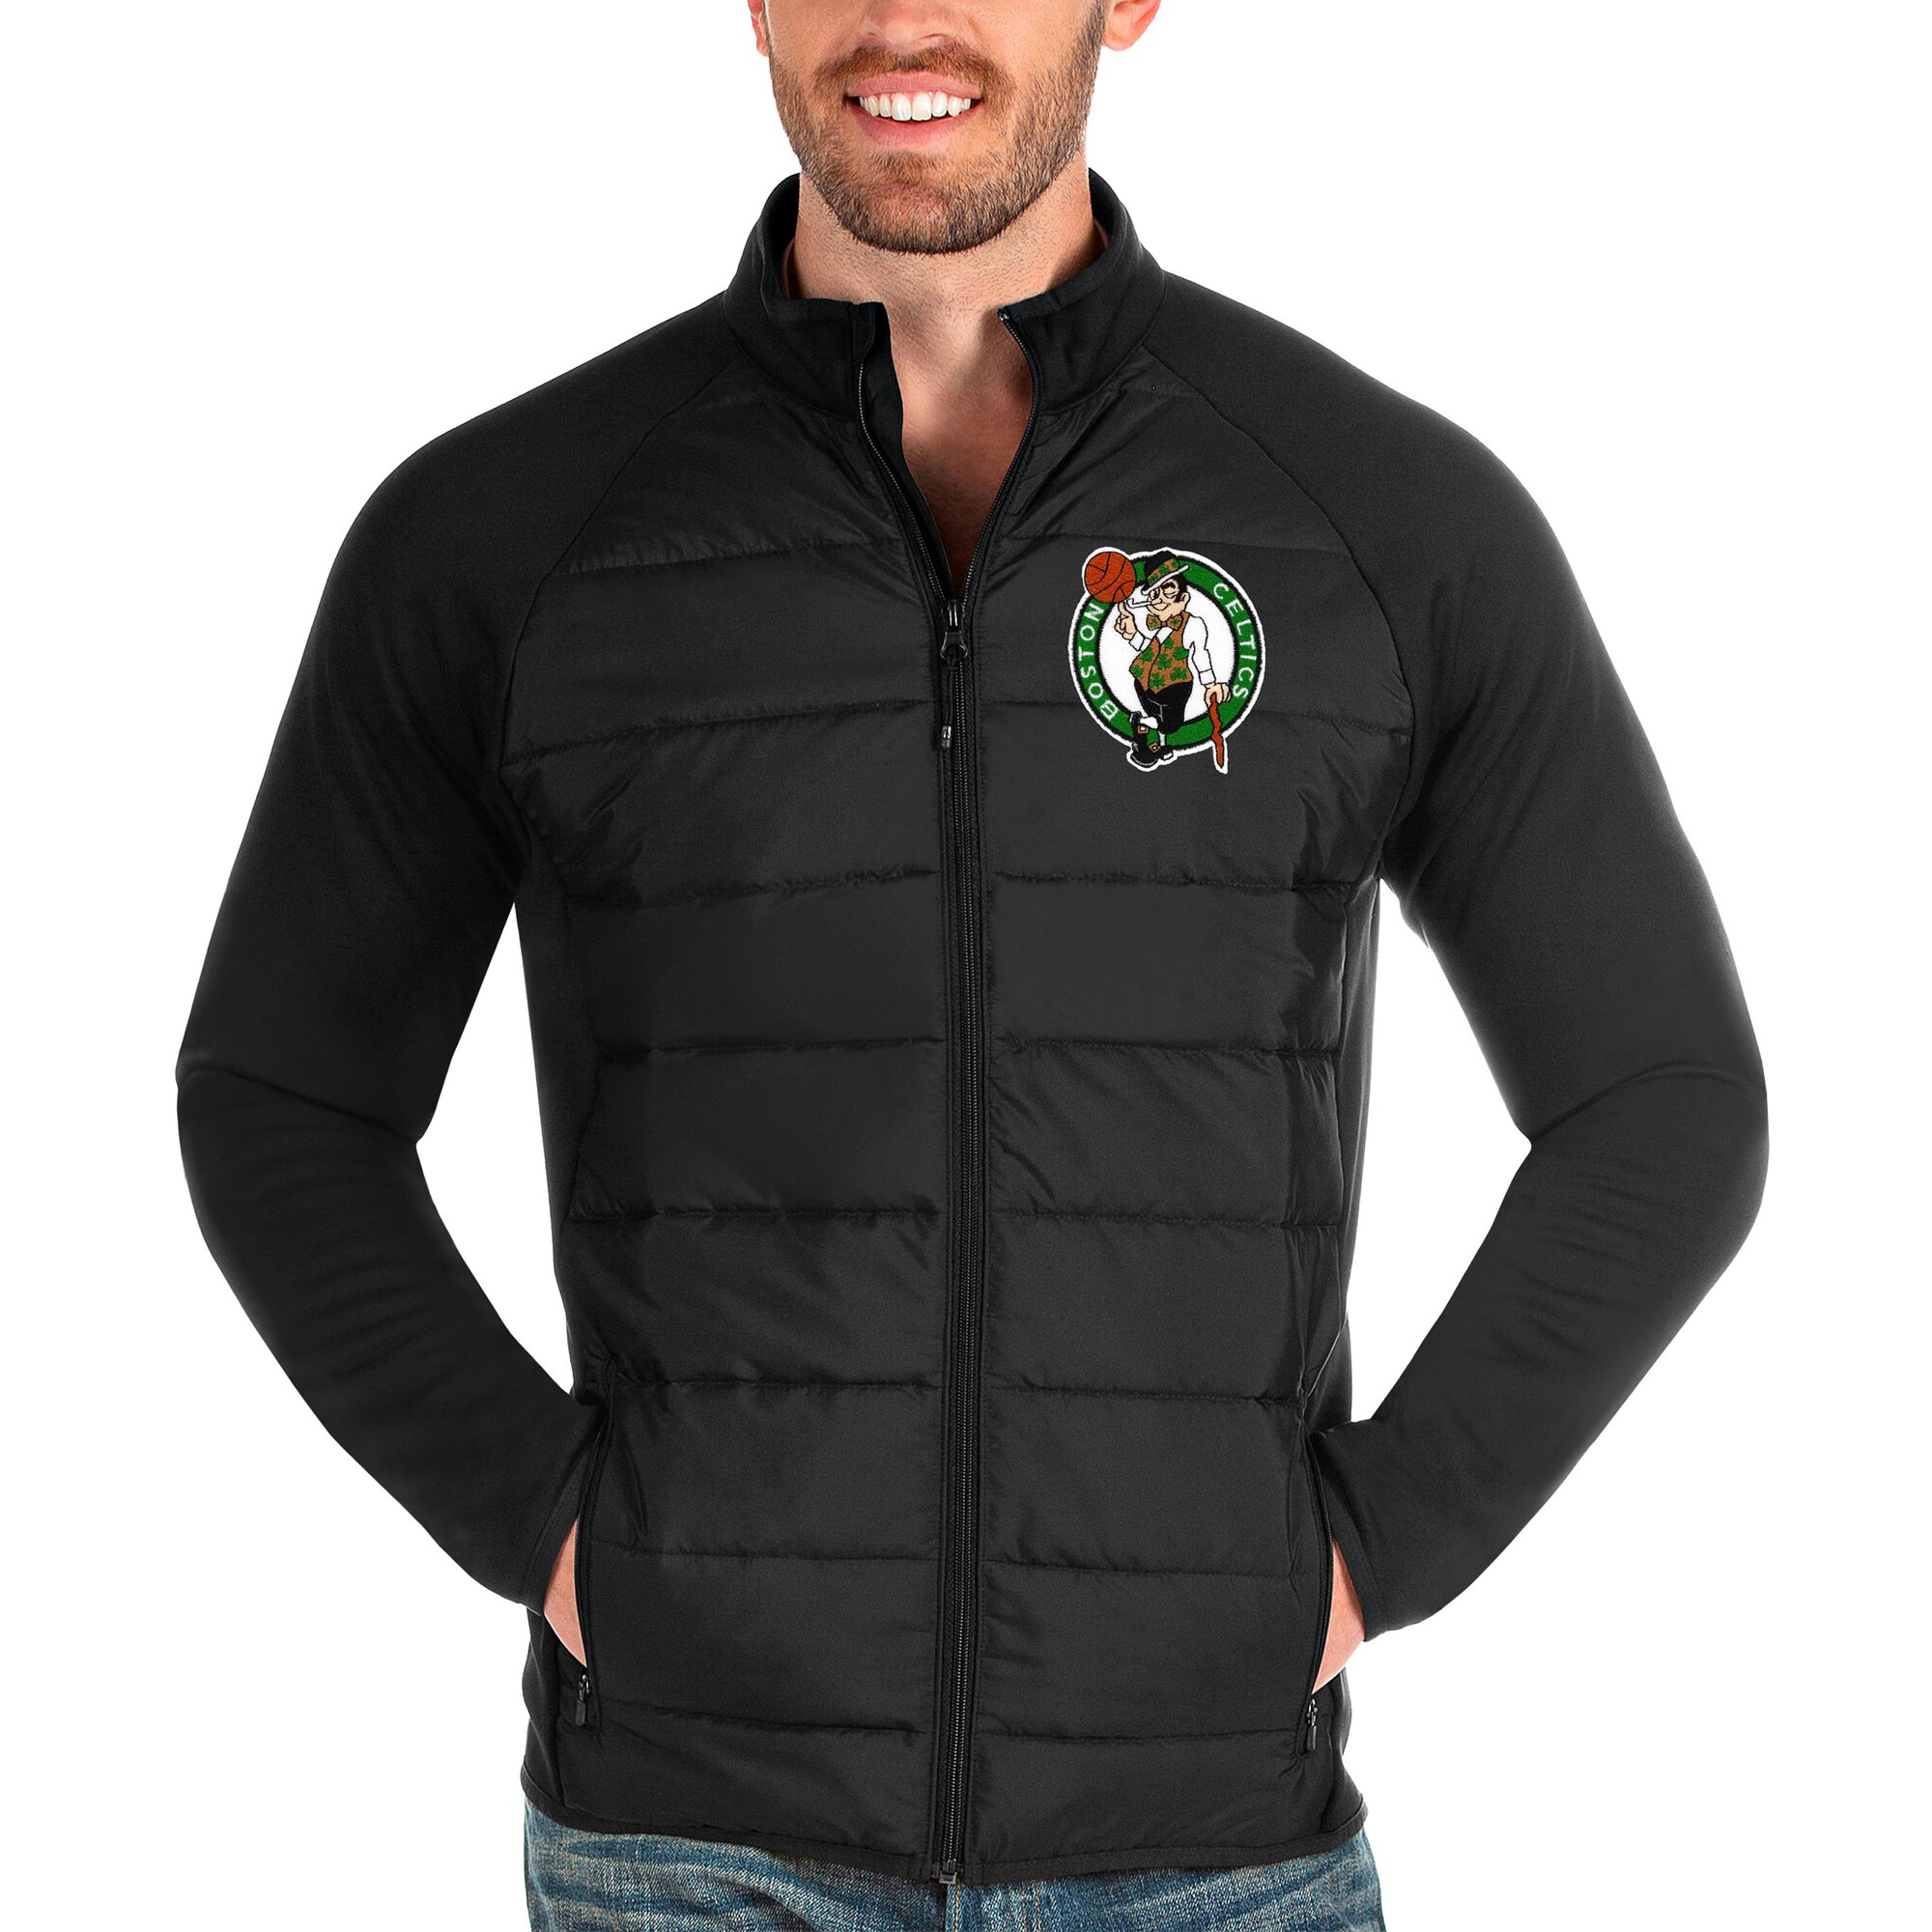 Boston Celtics Antigua Altitude Full-Zip Jacket - Black